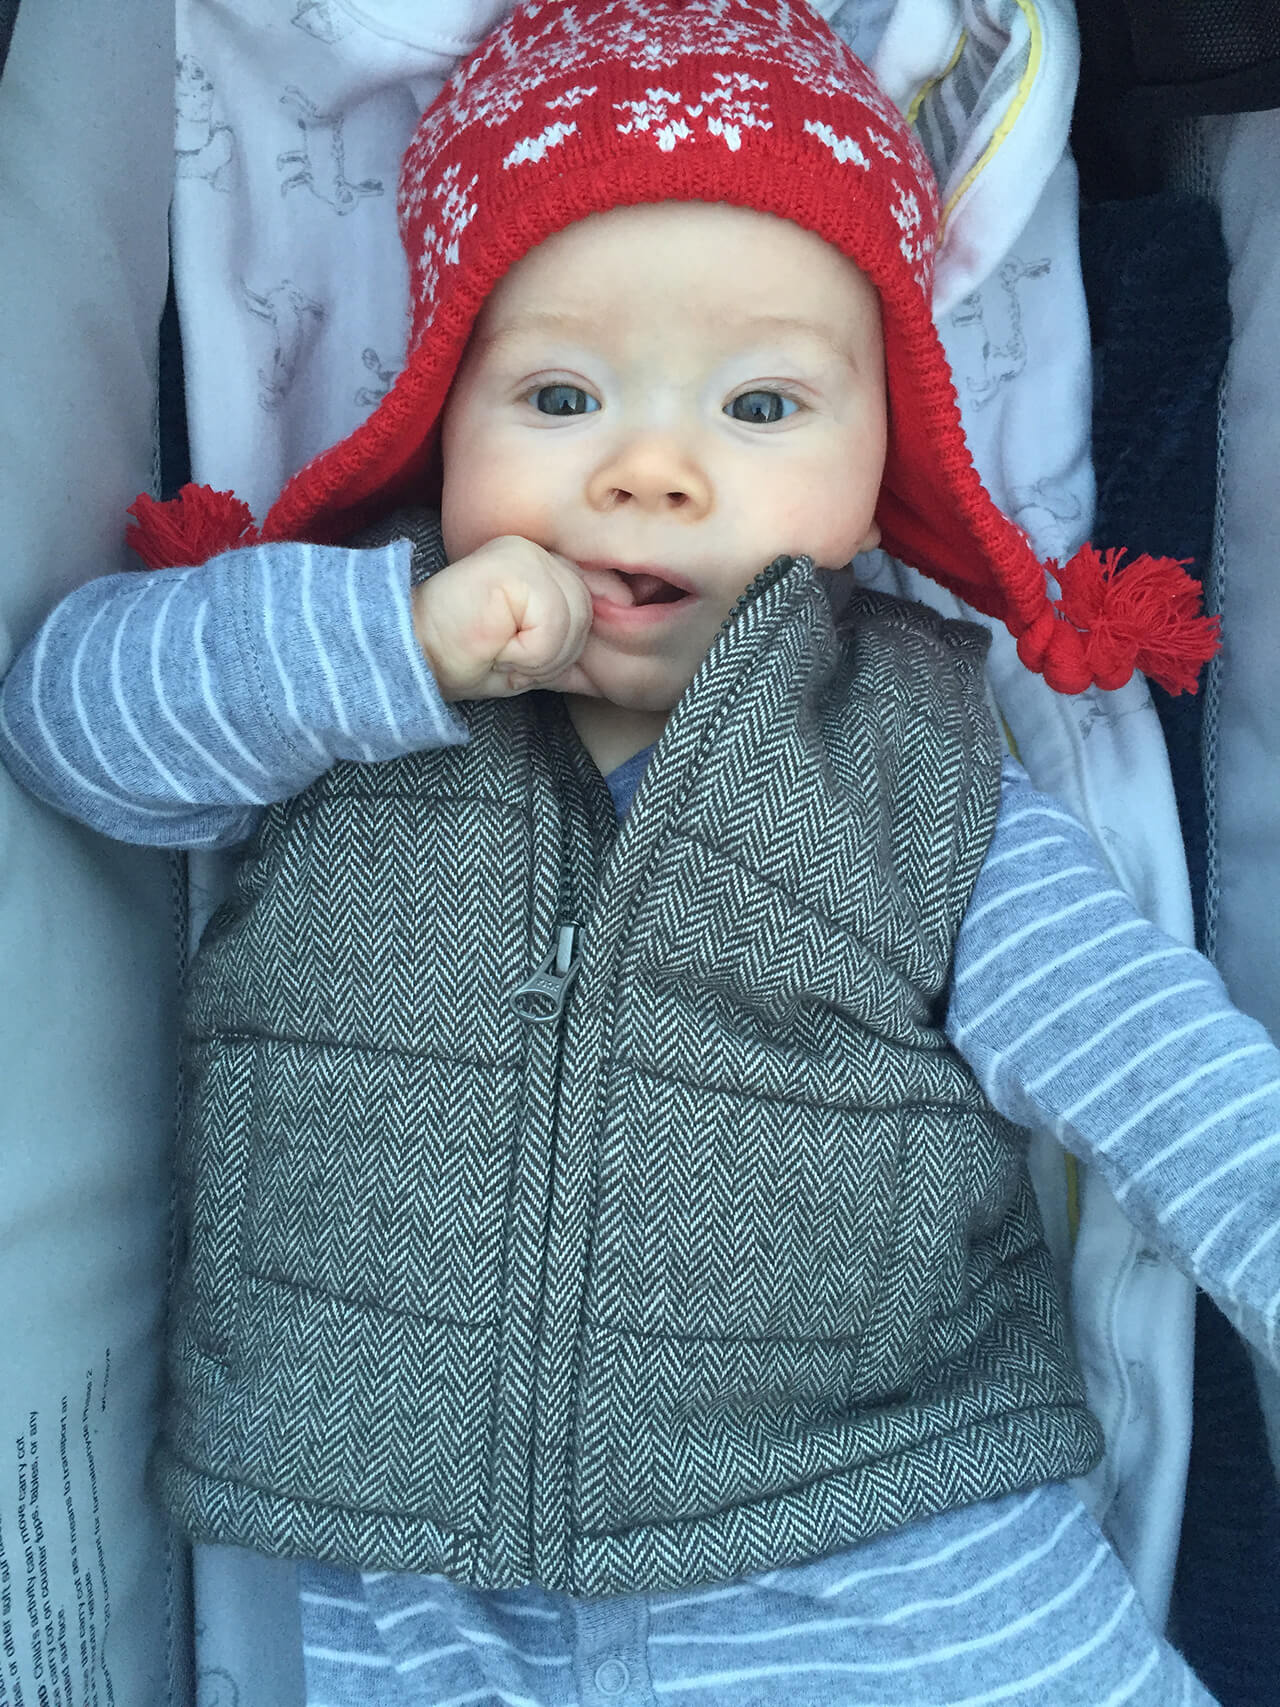 Augustine in a cute red hat